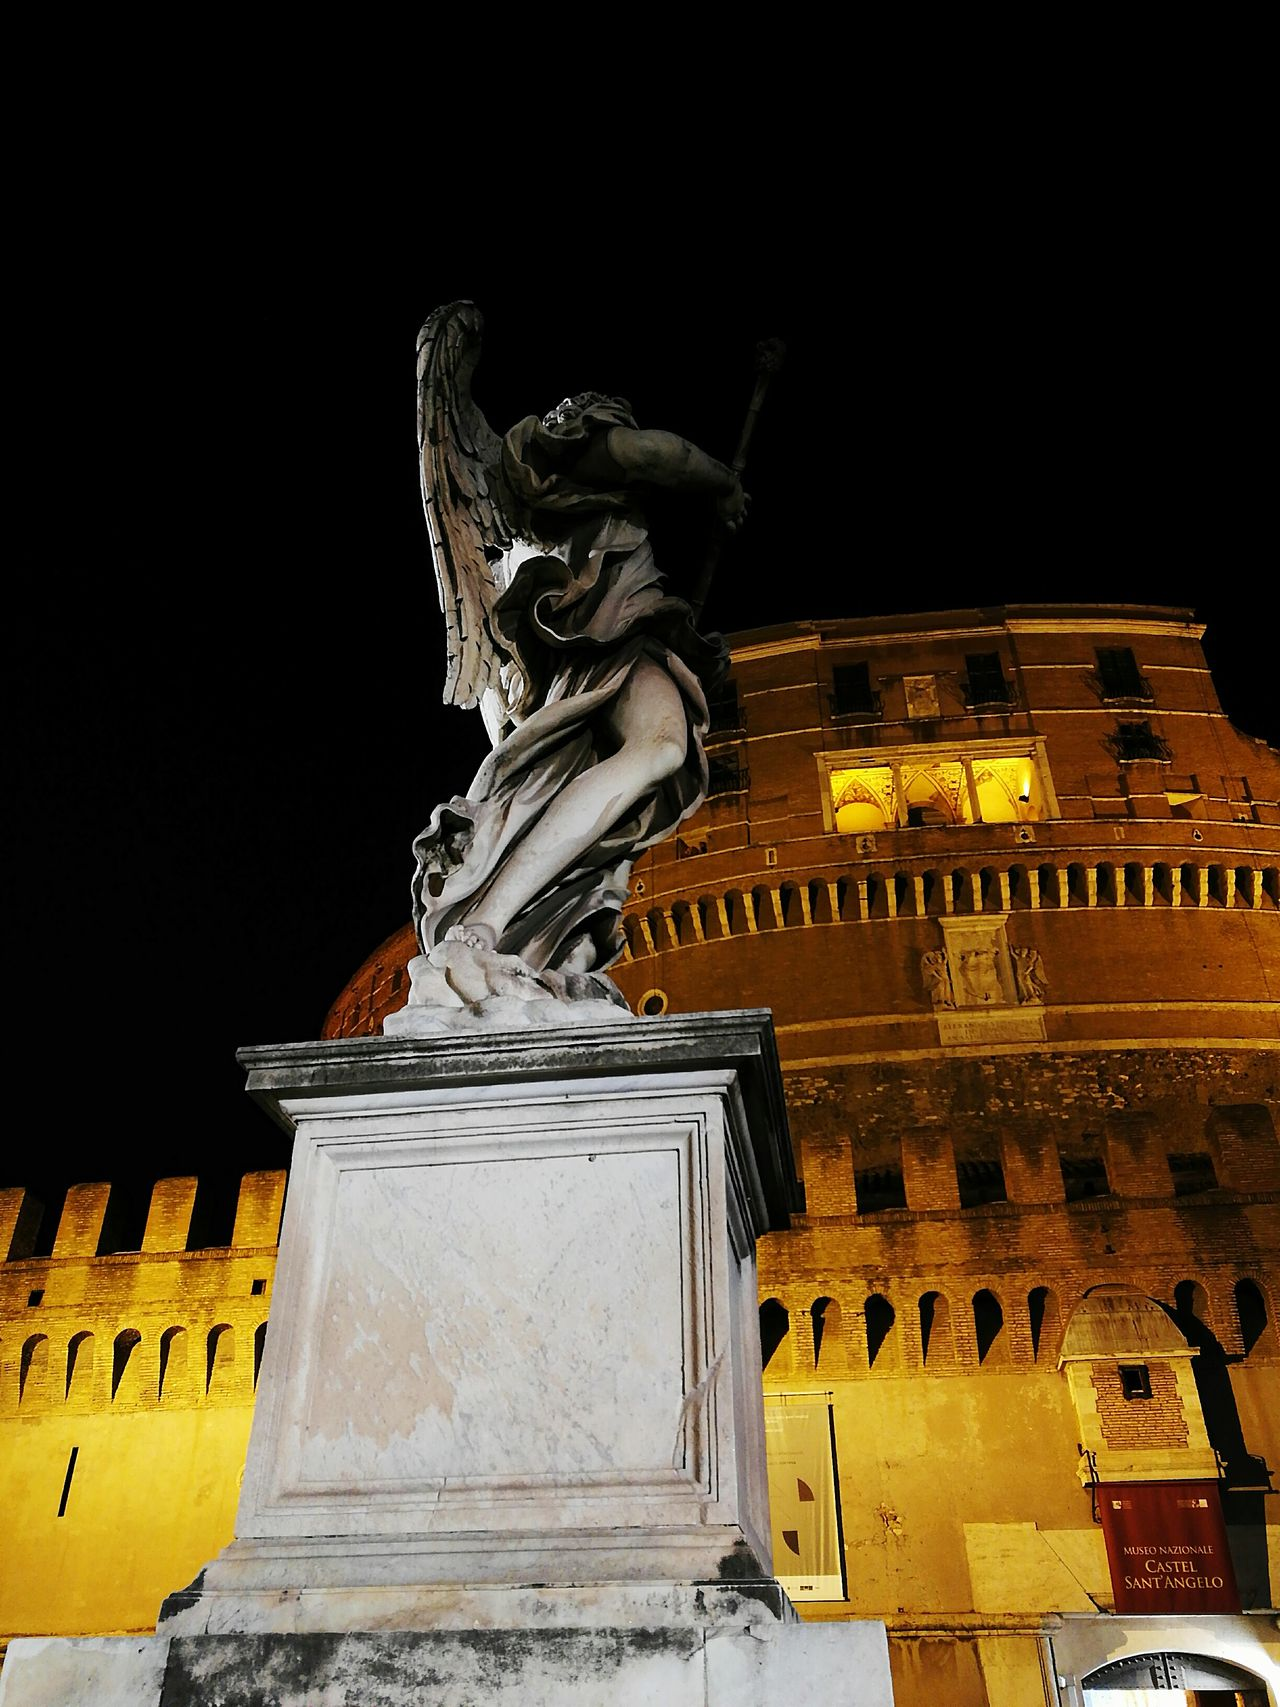 Rome Italy🇮🇹 Castel Sant'Angelo Rome By Night Hometown Huawei P9 Plus Statue Architecture Cultures Night City No People Outdoors Gold Colored Illuminated